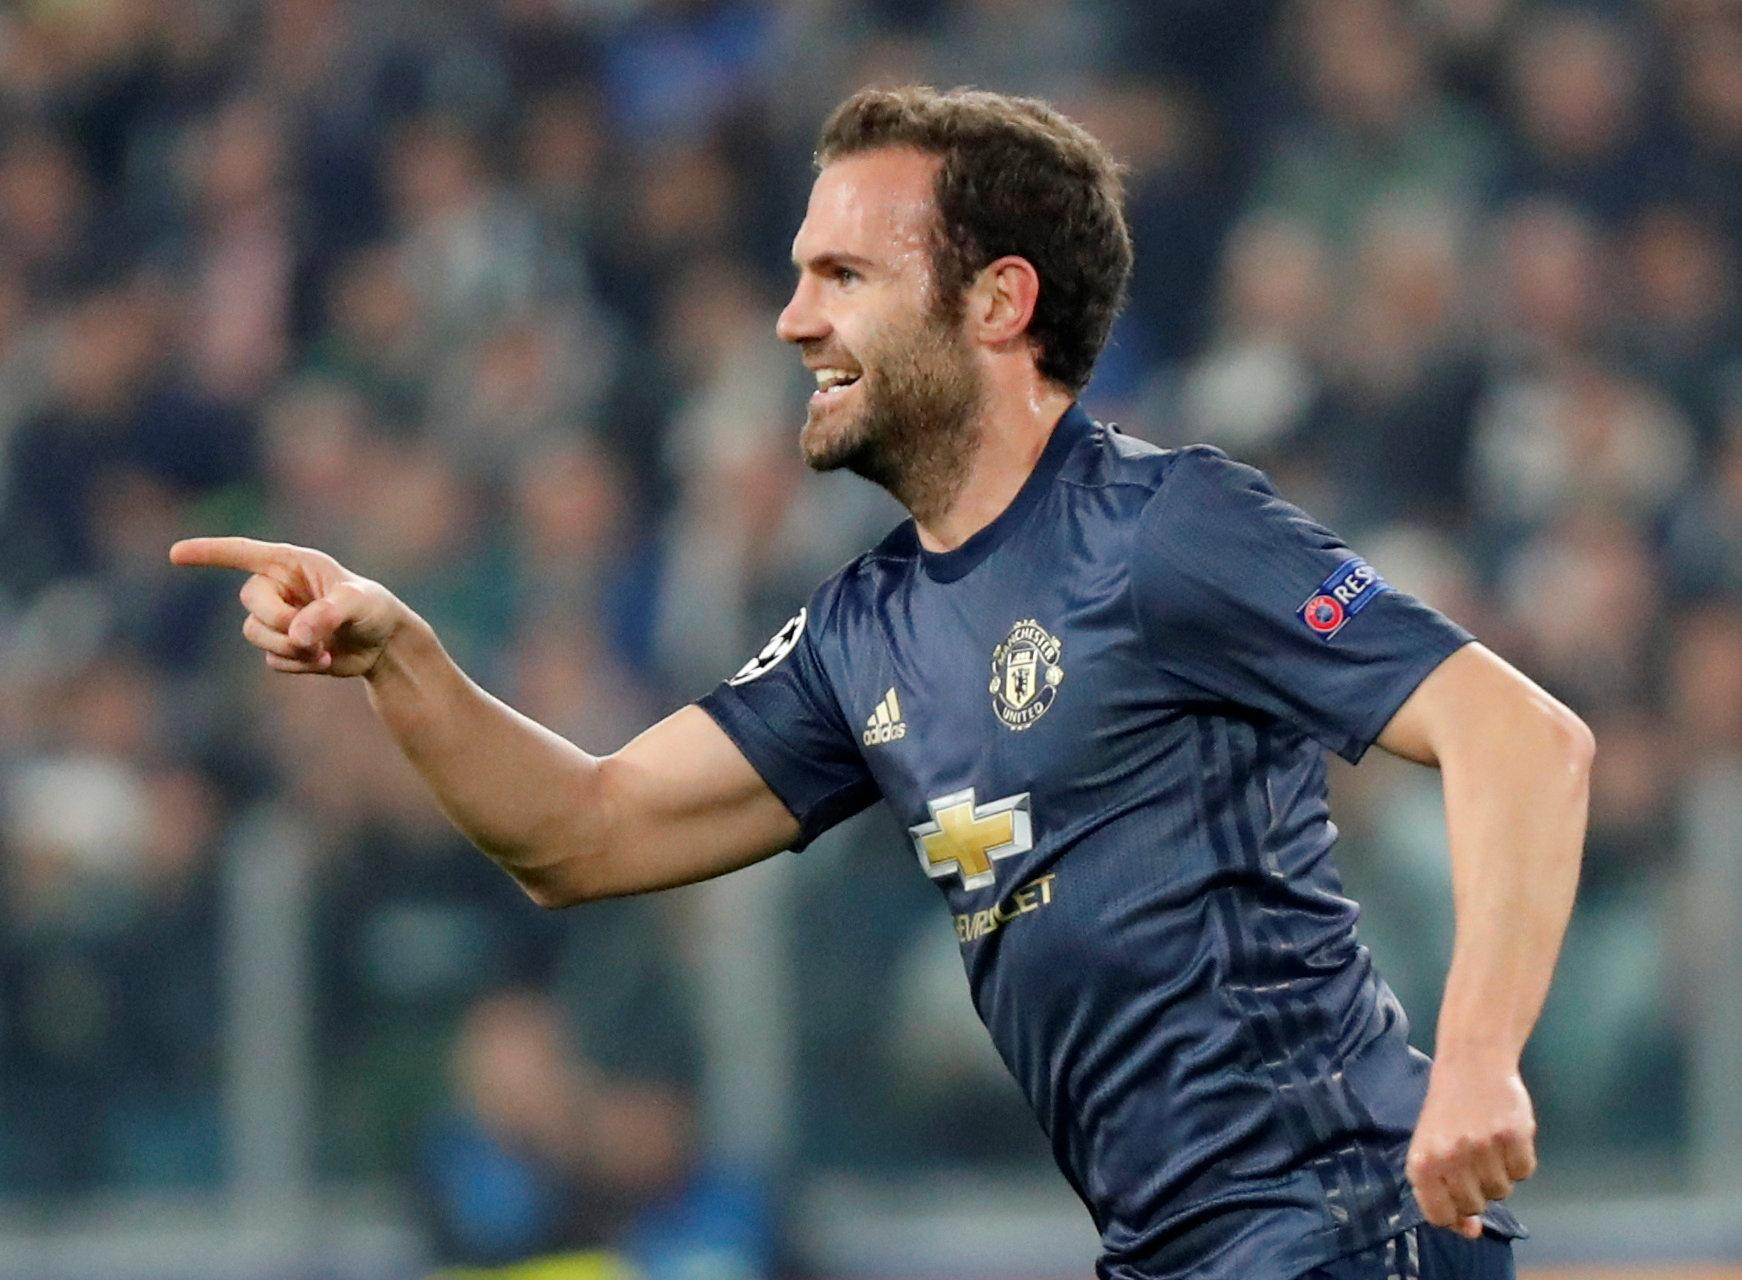 Juan Mata proved the perfect substitution as he scored a brilliant free-kick